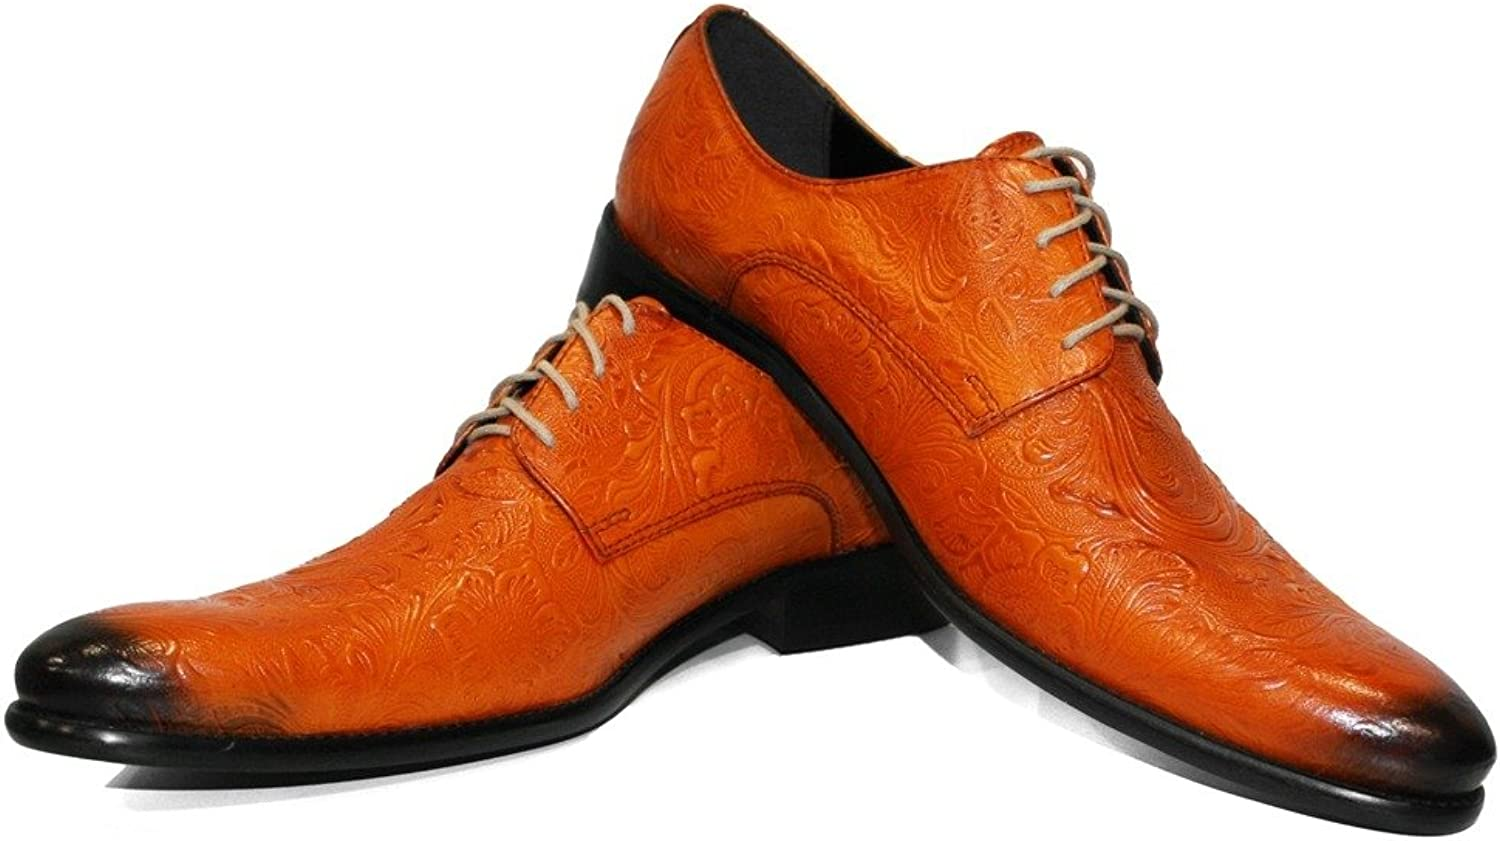 Modello Vigouro - Handmade Italian Leather Mens color orange Oxfords Dress shoes - Cowhide Embossed Leather - Lace-Up